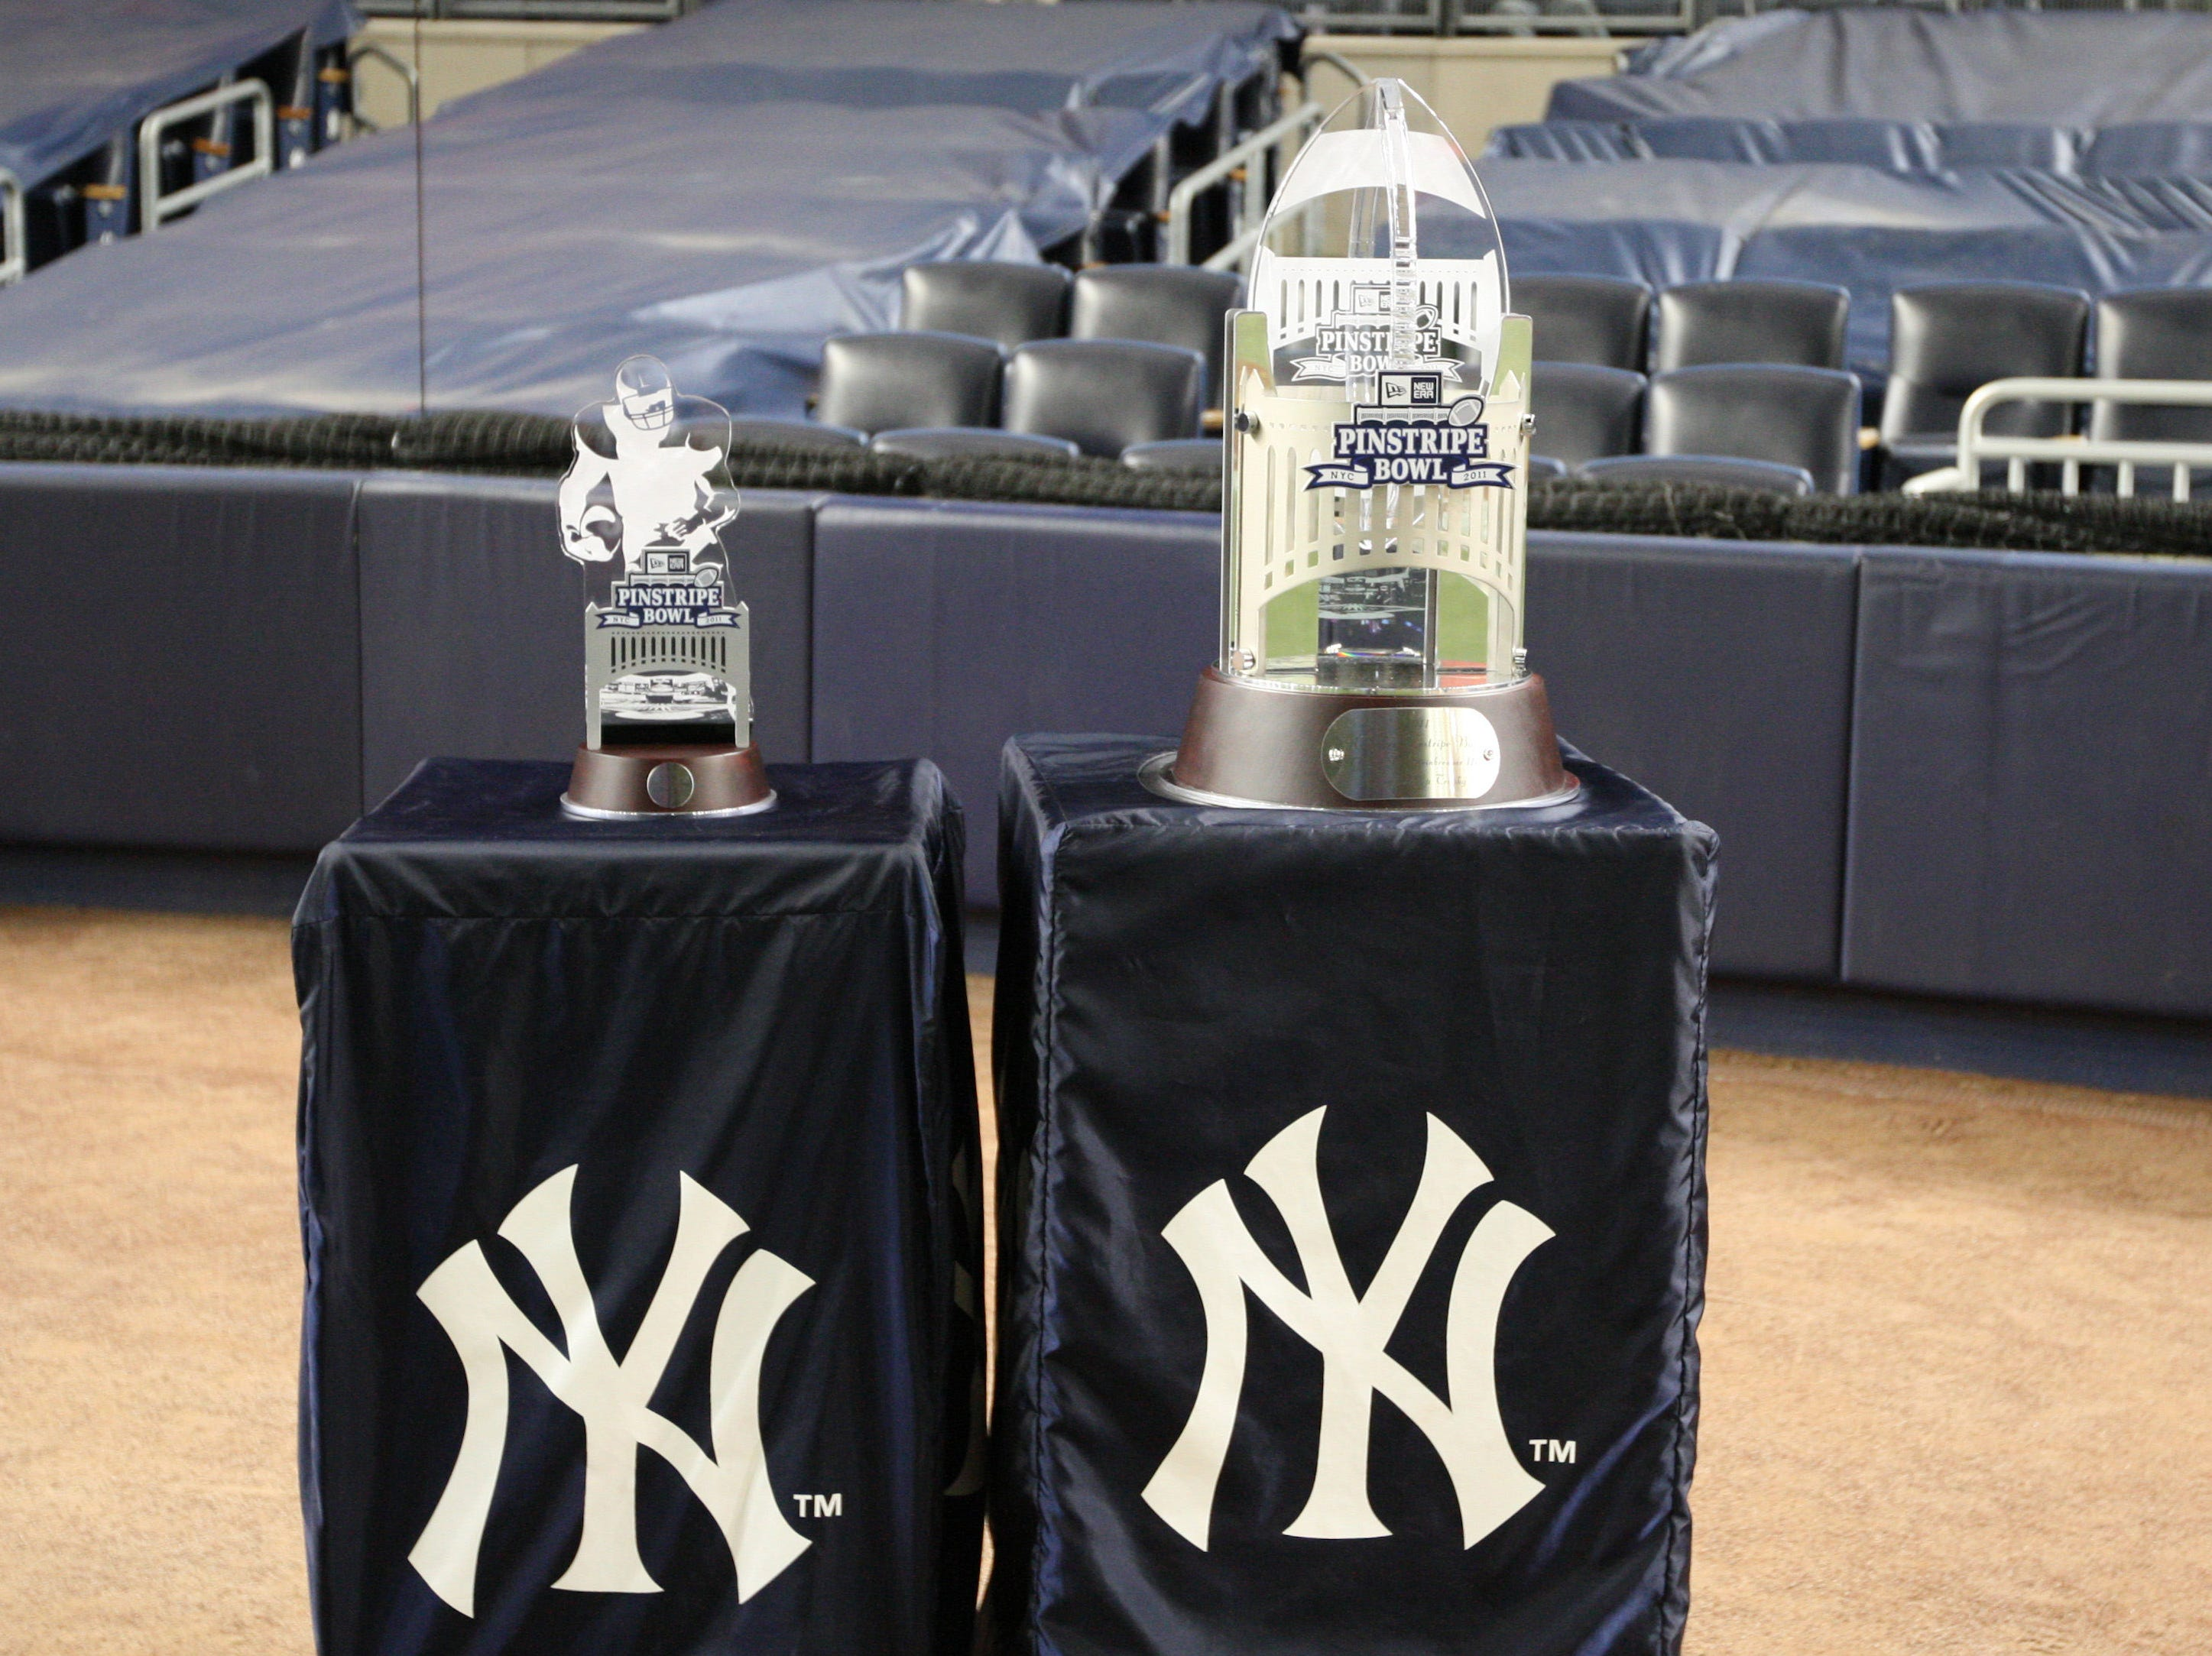 Trophies for the 2011 Pinstripe Bowl between the Rutgers Scarlet Knights and the Iowa State Cyclones at Yankee Stadium. Rutgers won 27 - 13.